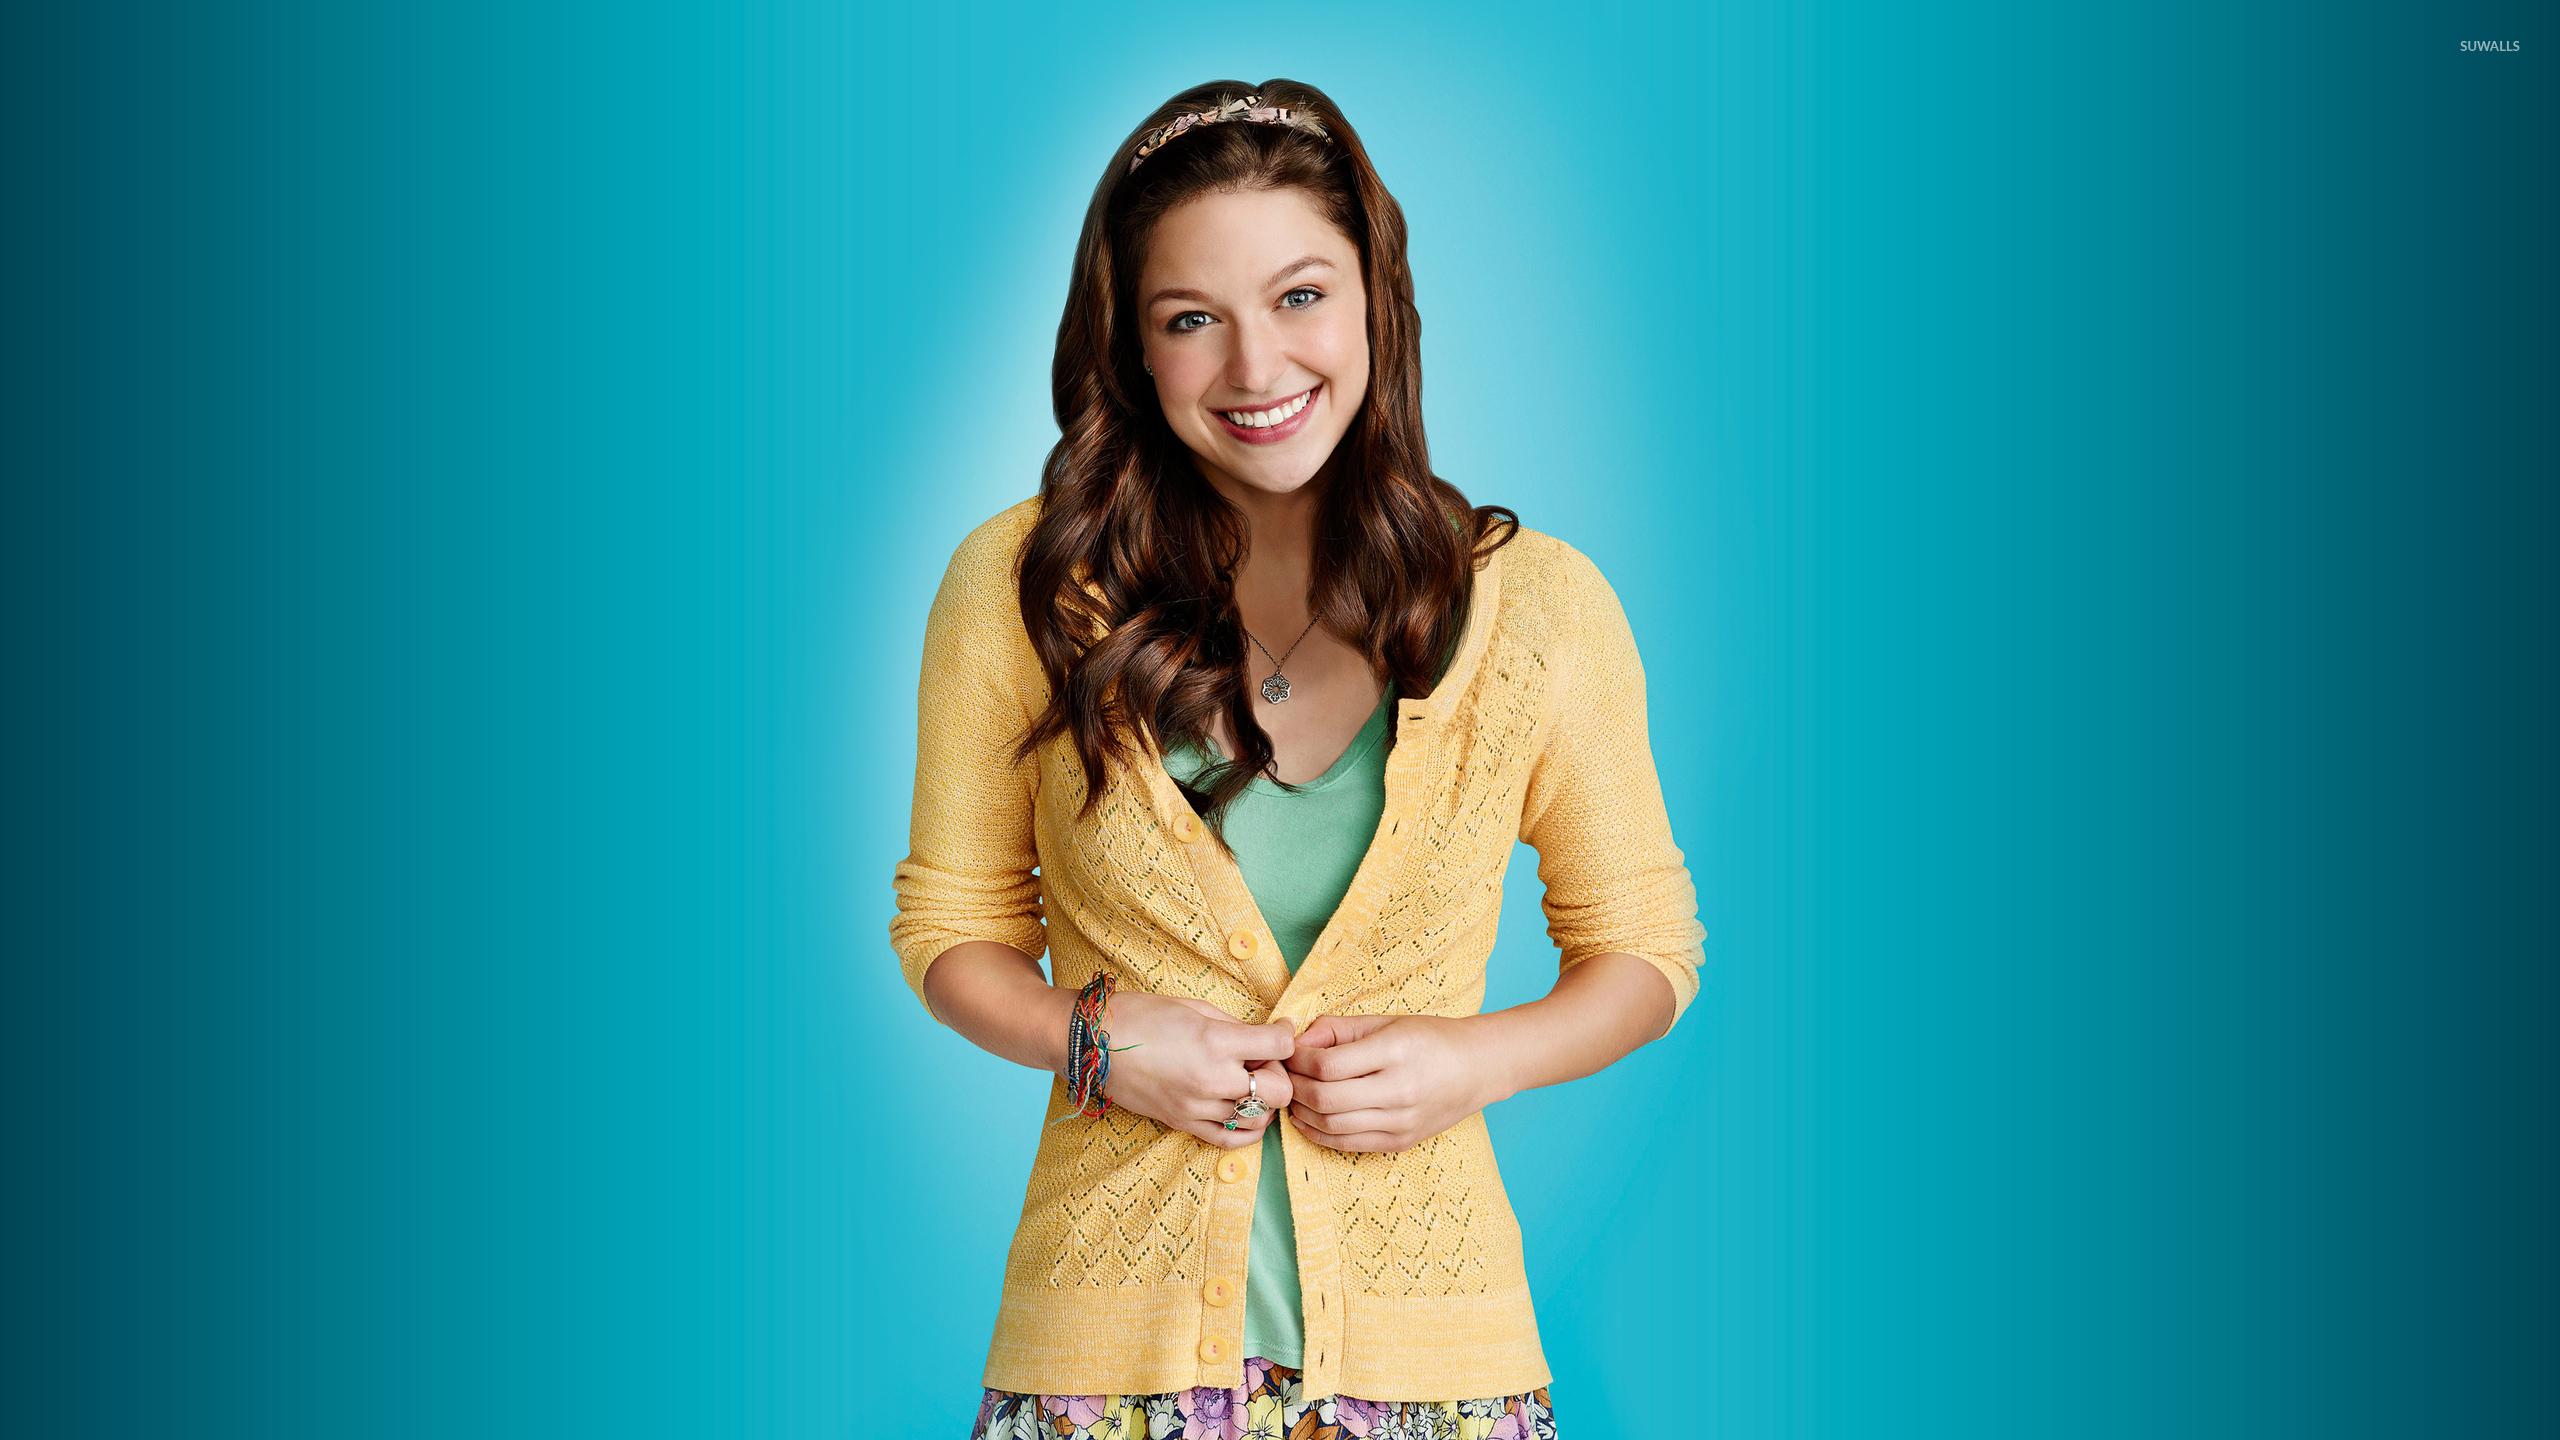 Tardis Wallpaper Hd Marley Rose With A Yellow Sweater Glee Wallpaper Tv